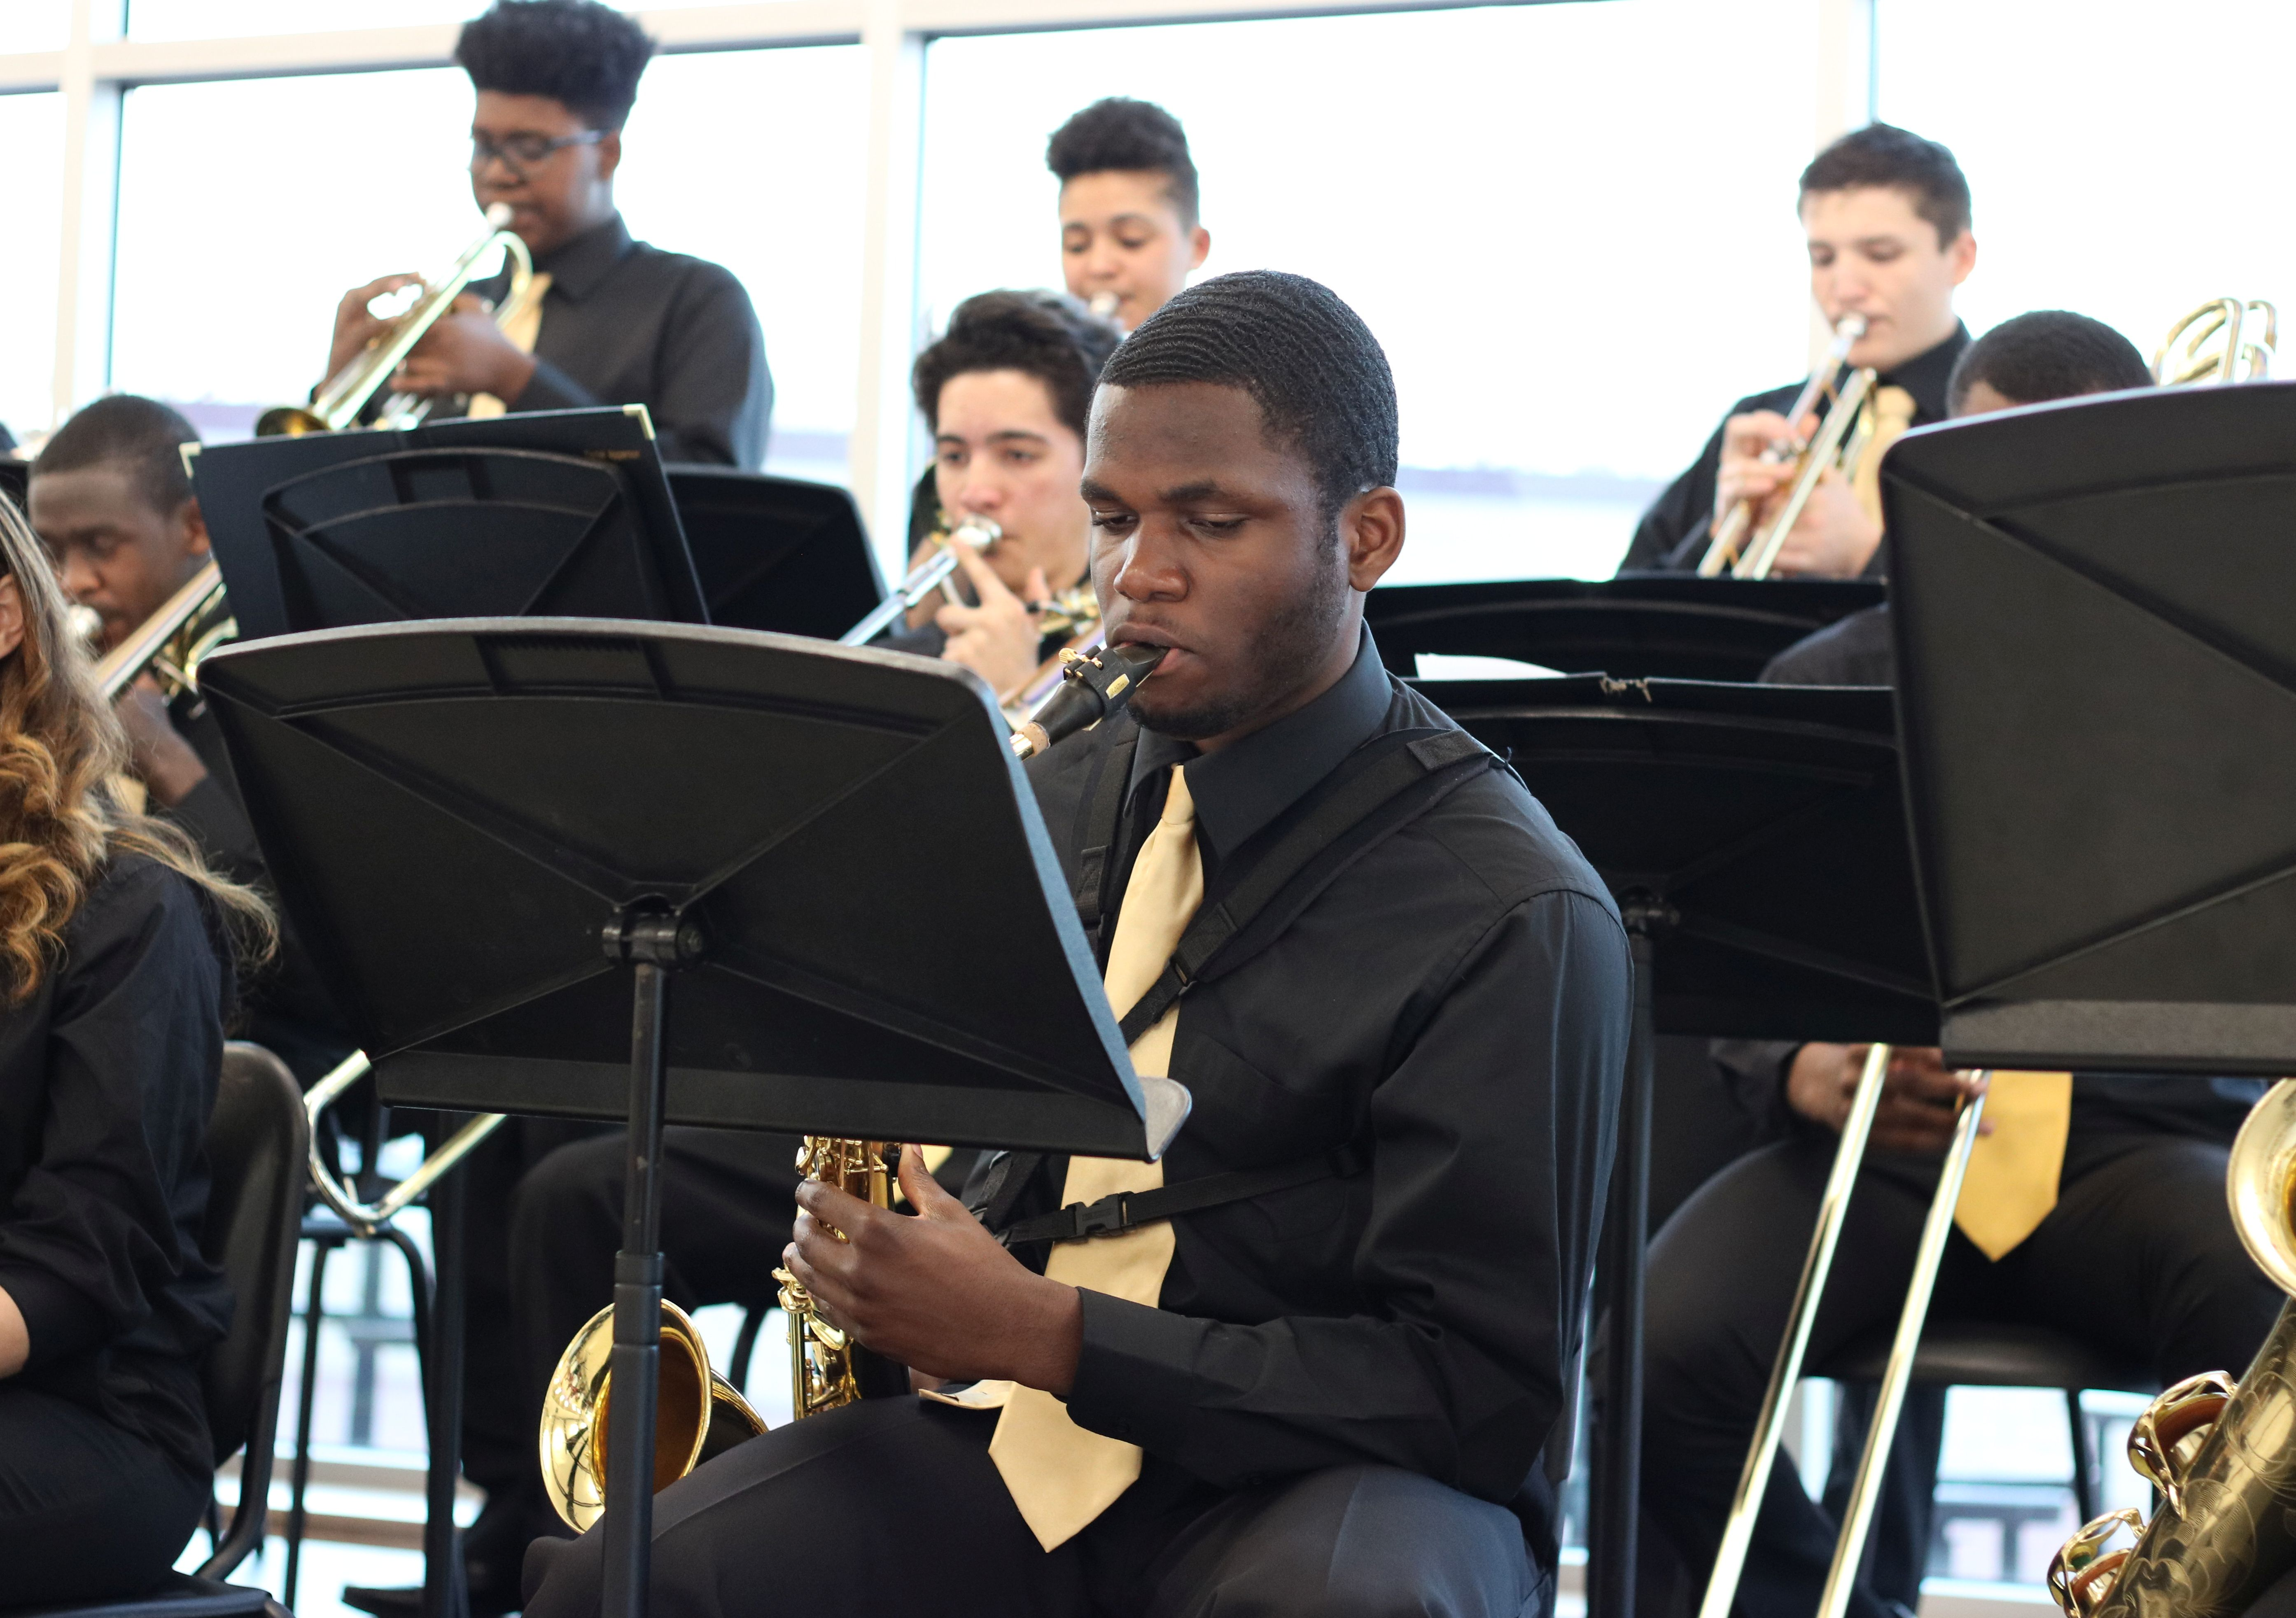 Jazz Ensemble performs, saxophone player